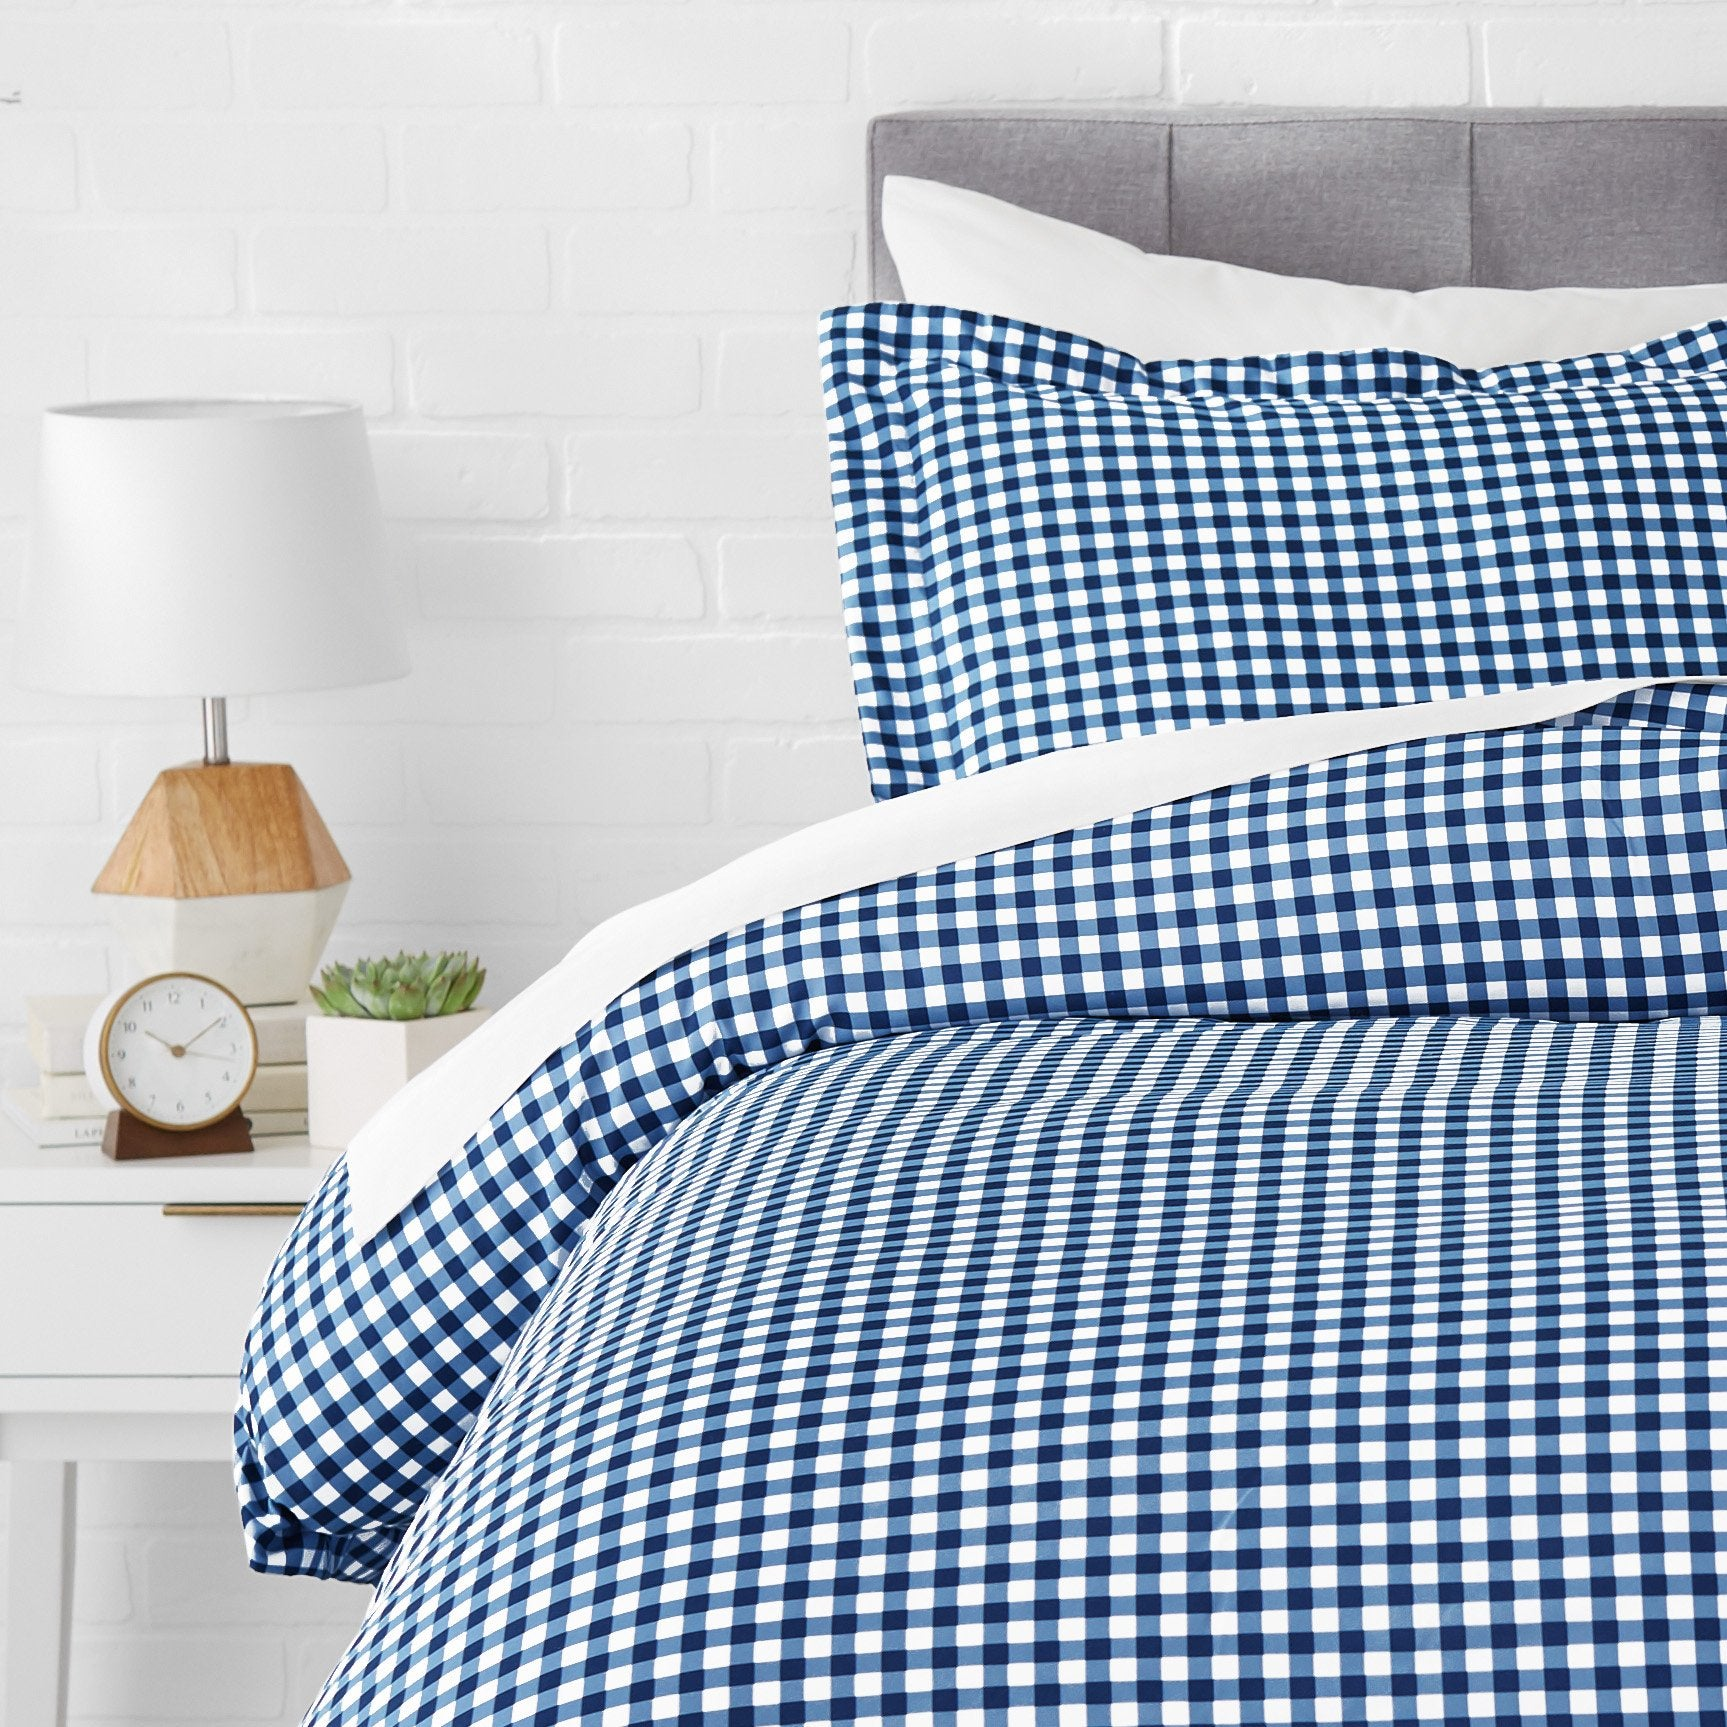 Microfiber Duvet Cover Set - Lightweight and Soft - Twin/Twin XL, Gingham Plaid